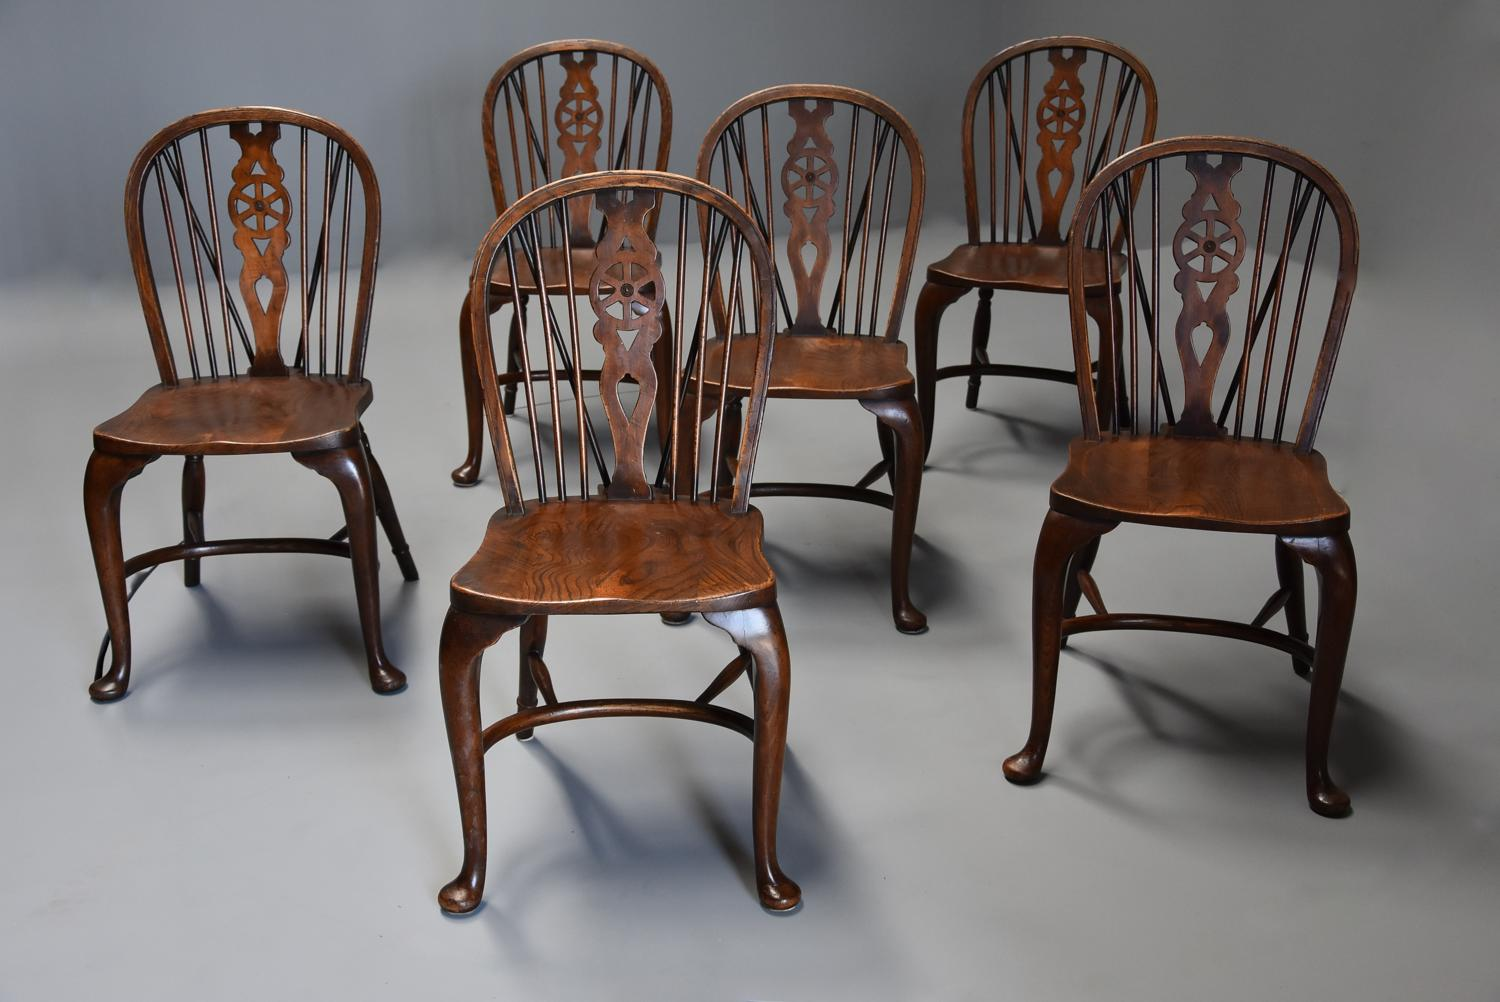 Superb set of six ash wheelback Windsor chairs with cabriole legs